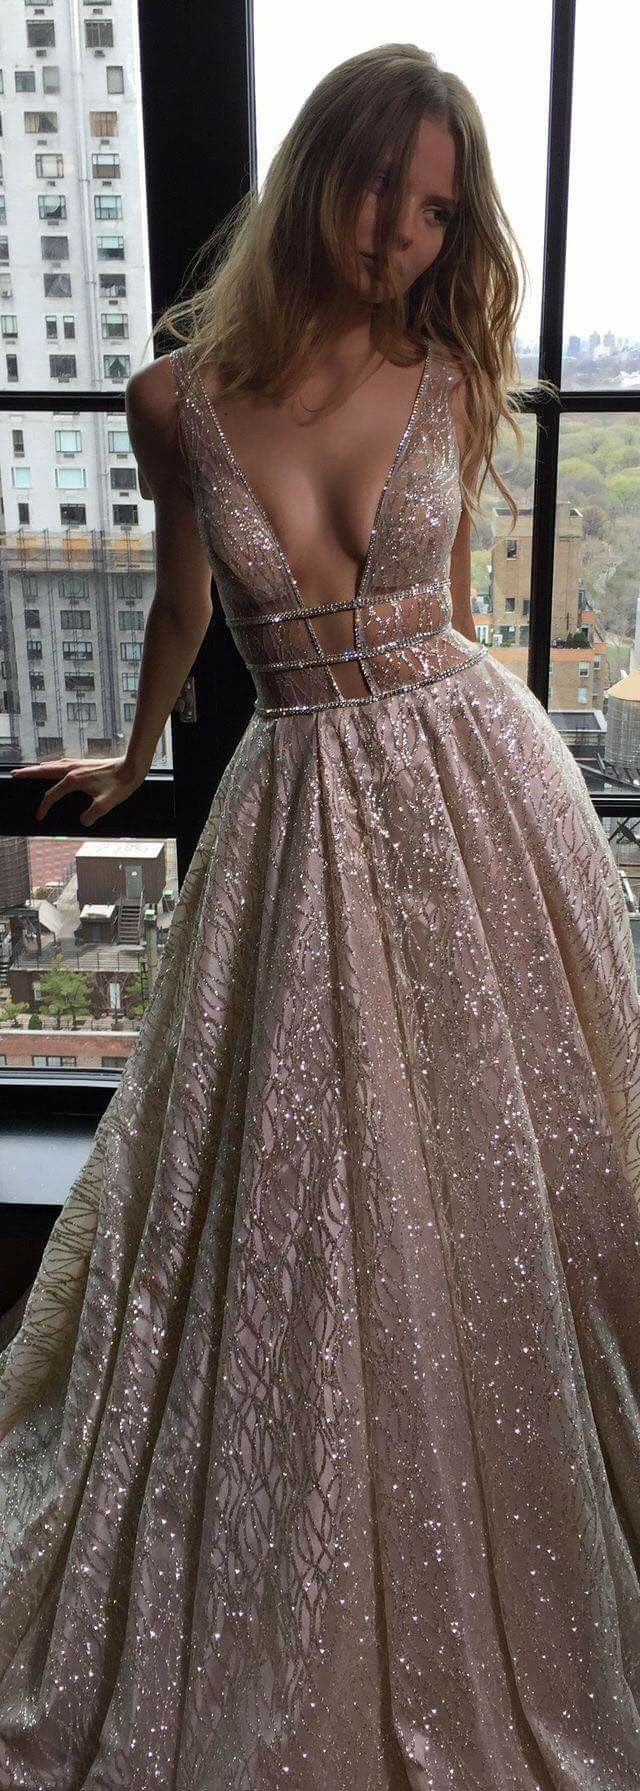 Pin by tanique angus on prom k pinterest prom gowns and